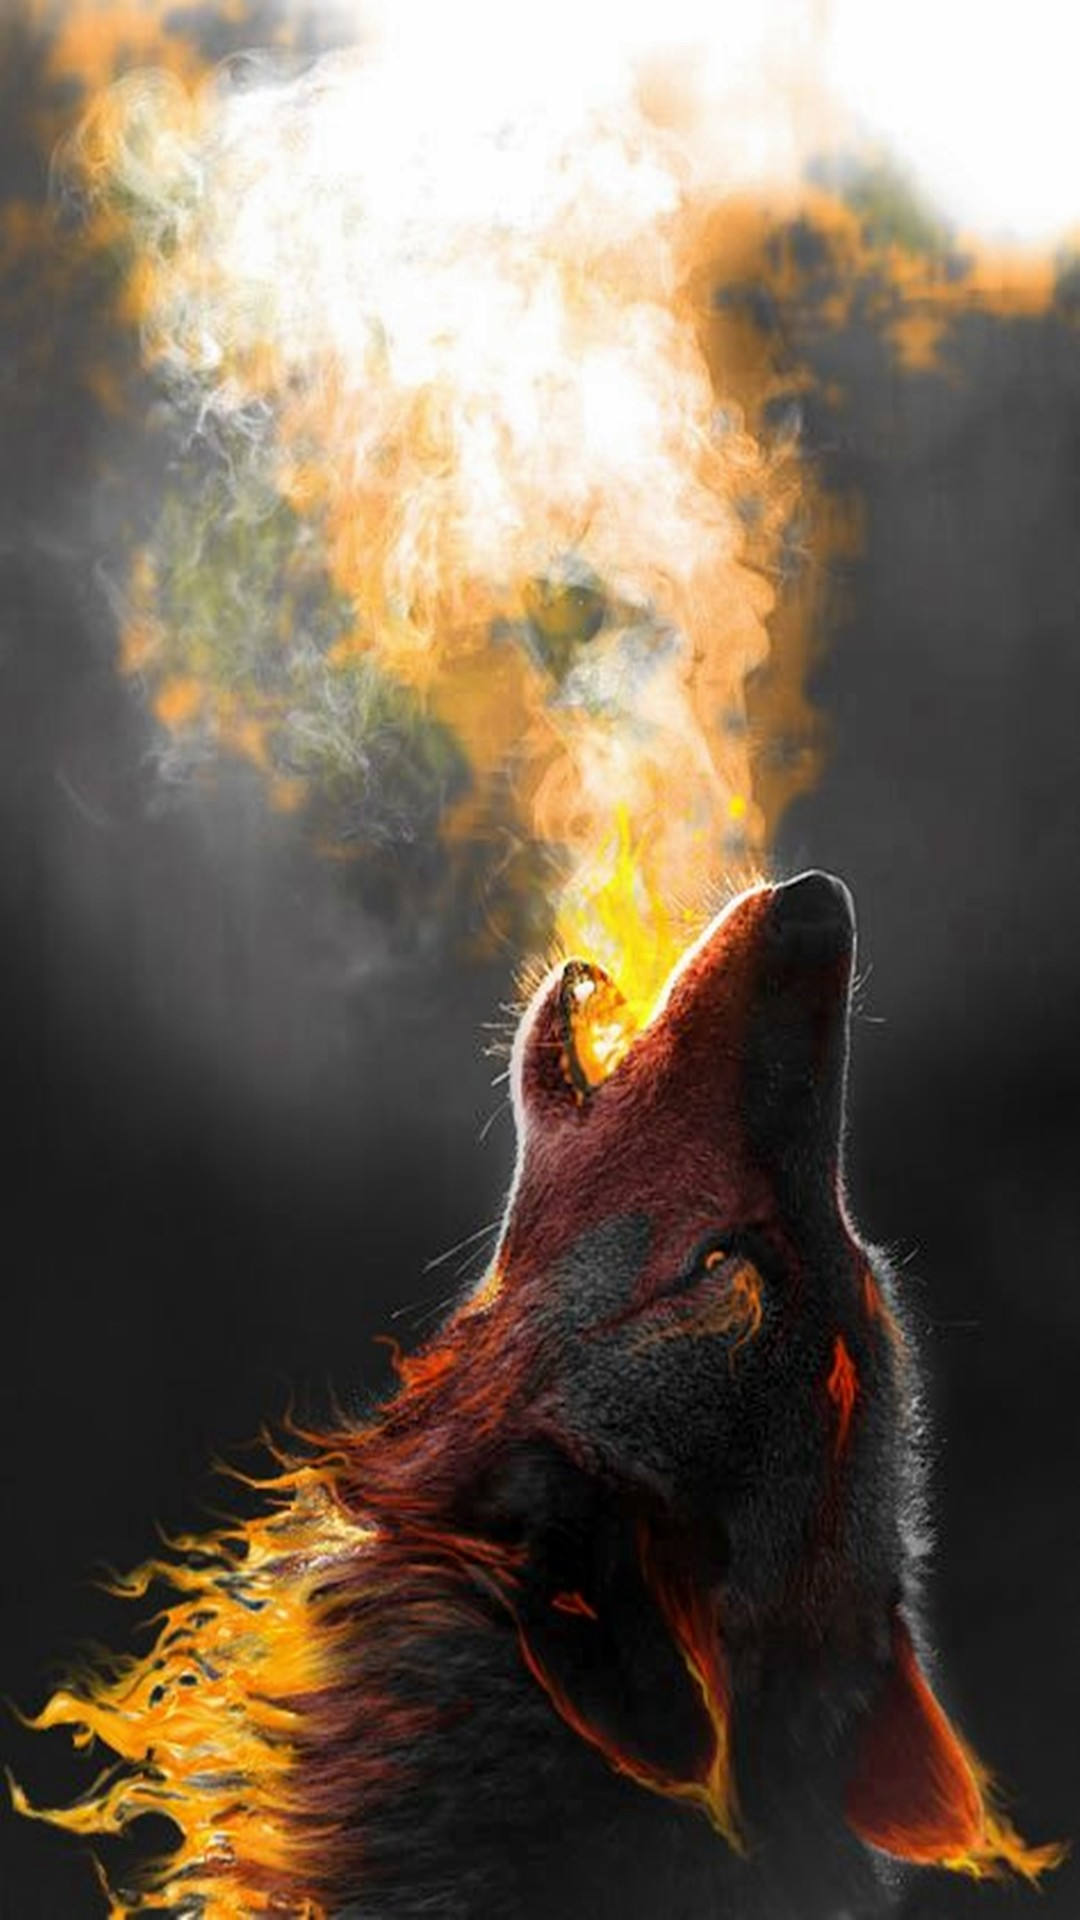 Wolf howling wallpaper 67 images - Wolf howling hd ...